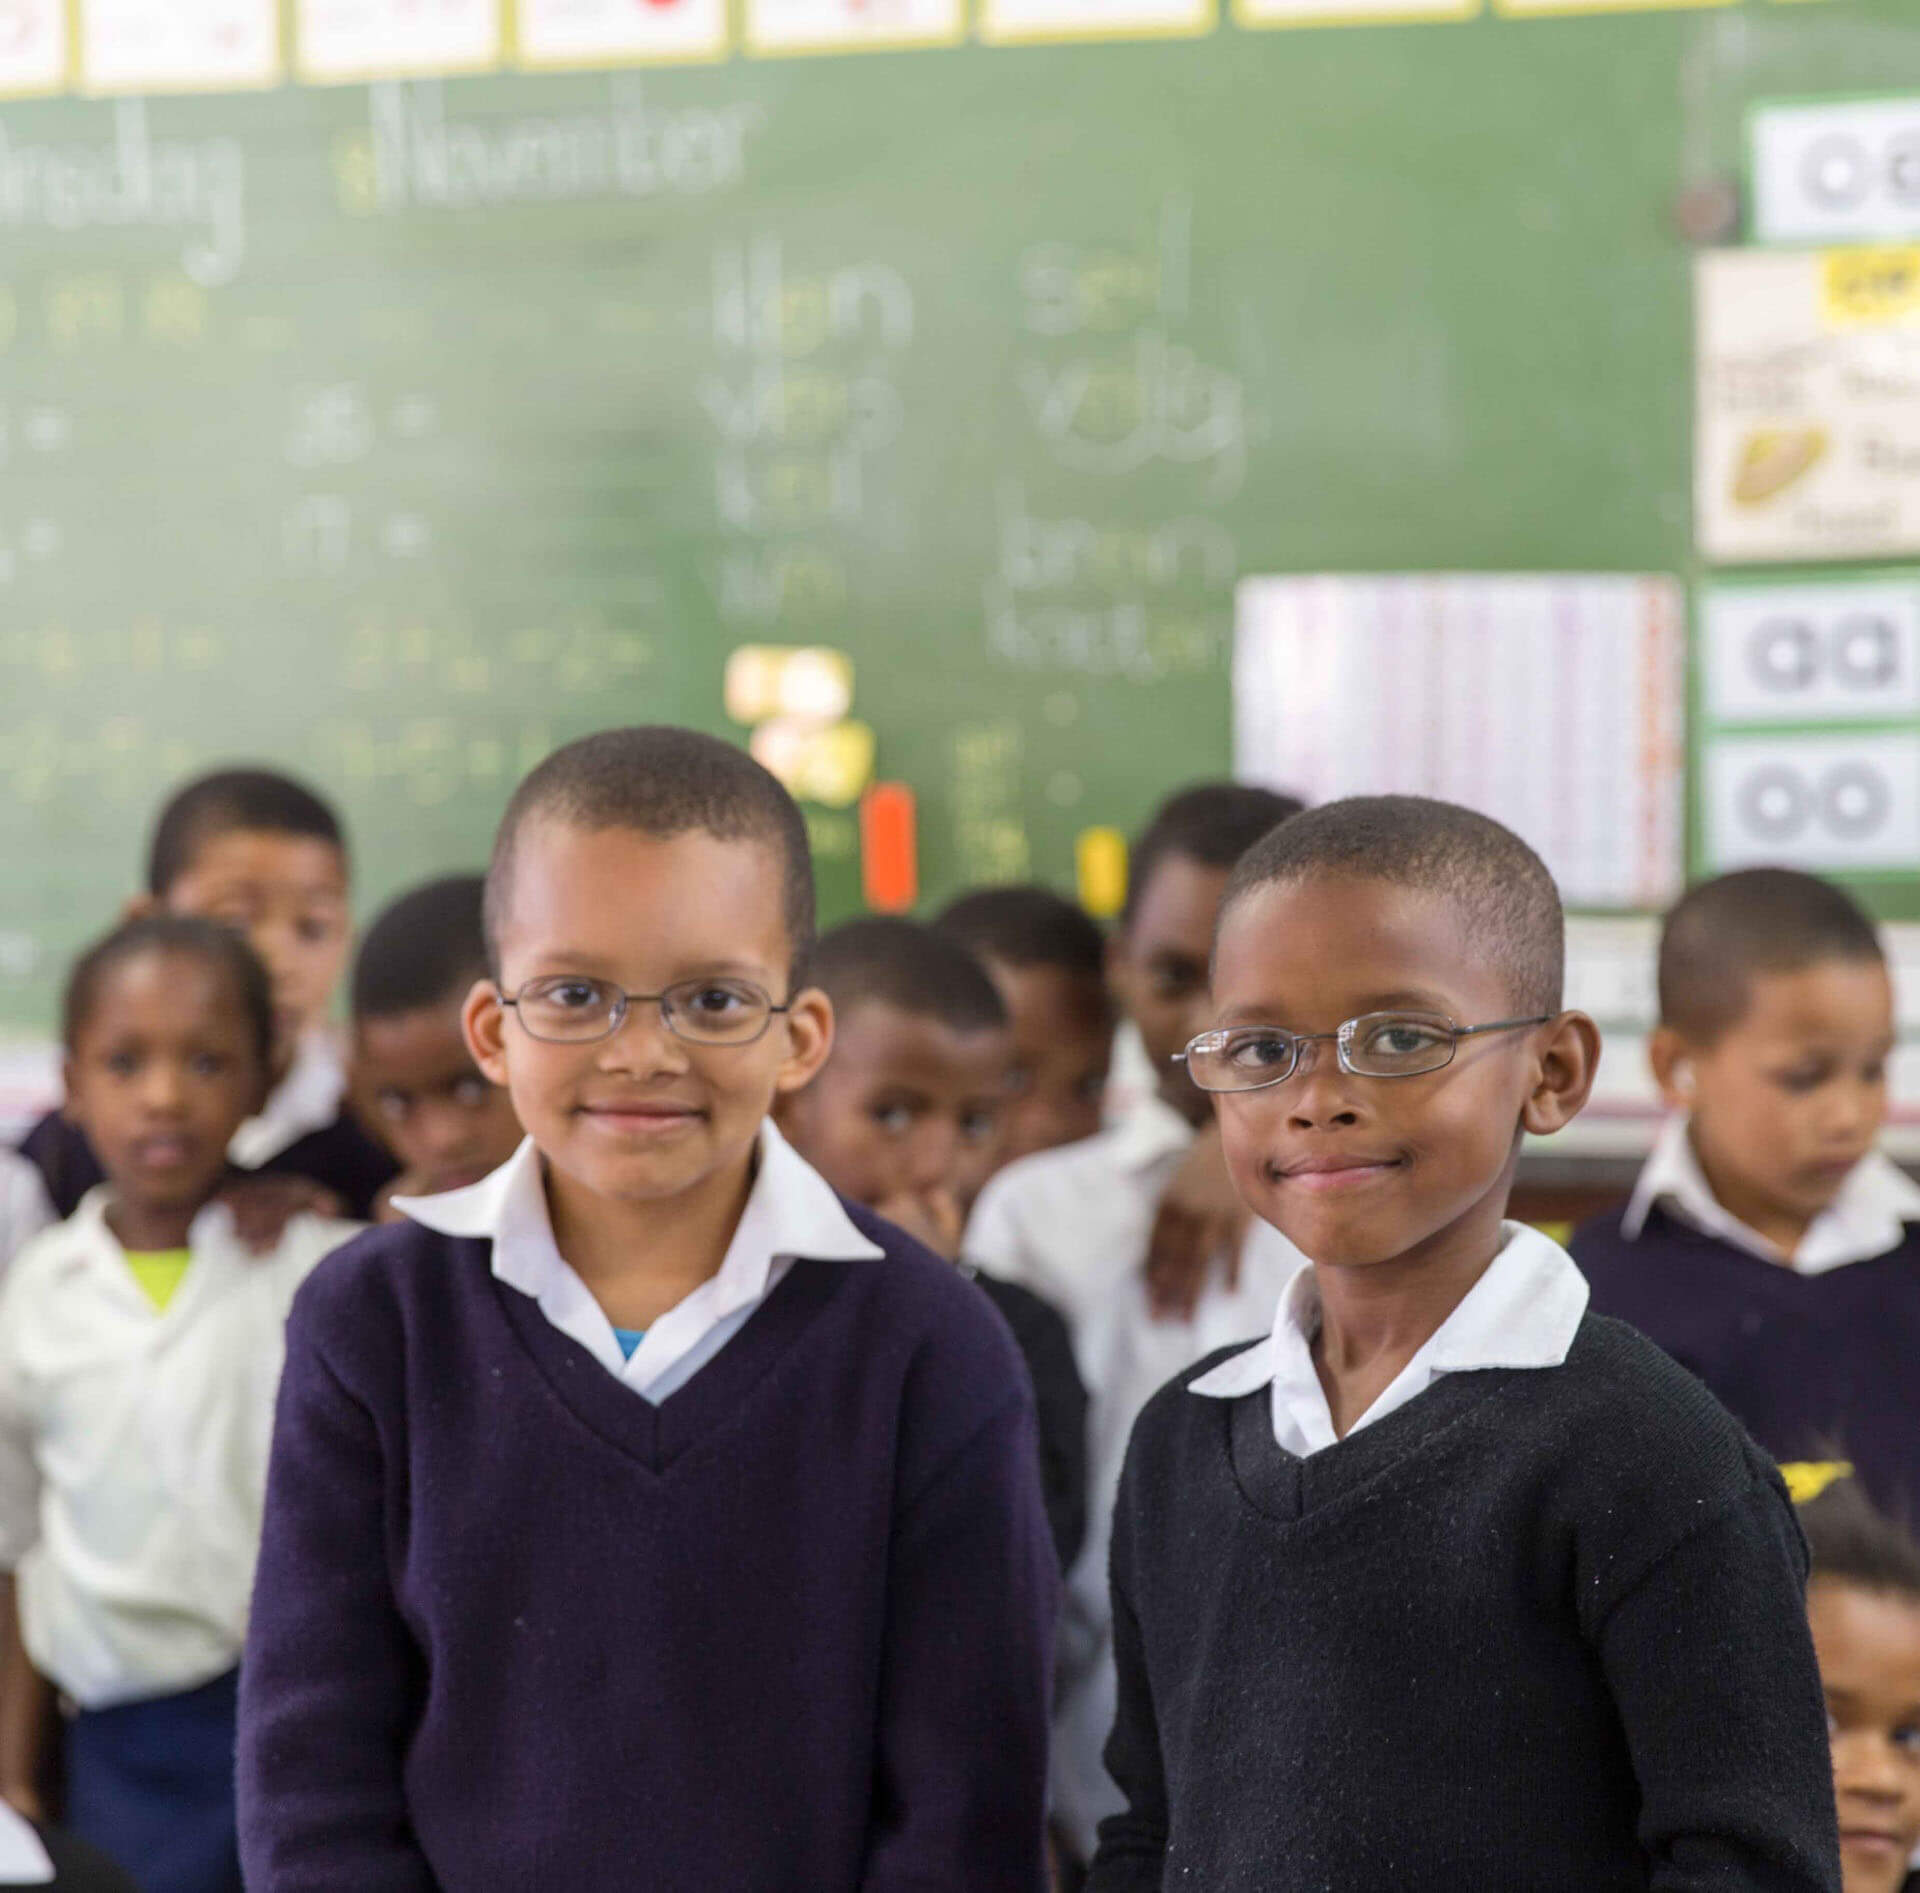 Mobile Schools Health delivers glasses to kids